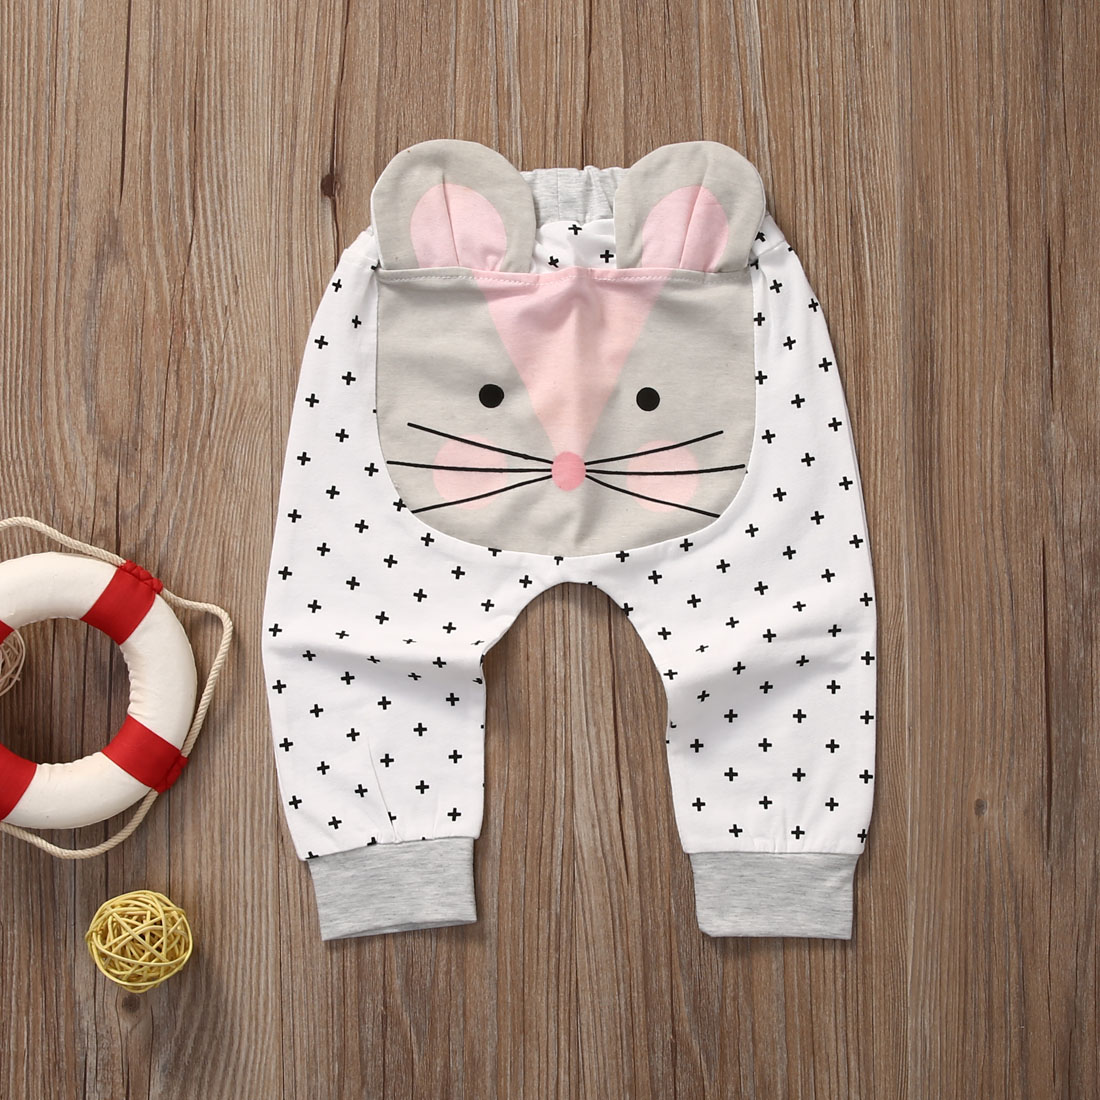 Baby-Girls-Boys-Pants-Cotton-Harem-Pants-Cartoon-Casual-Toddler-Baby-Bottoms-Pants-Boys-Girls-Cartoon-Harem-Pants-Trousers-1